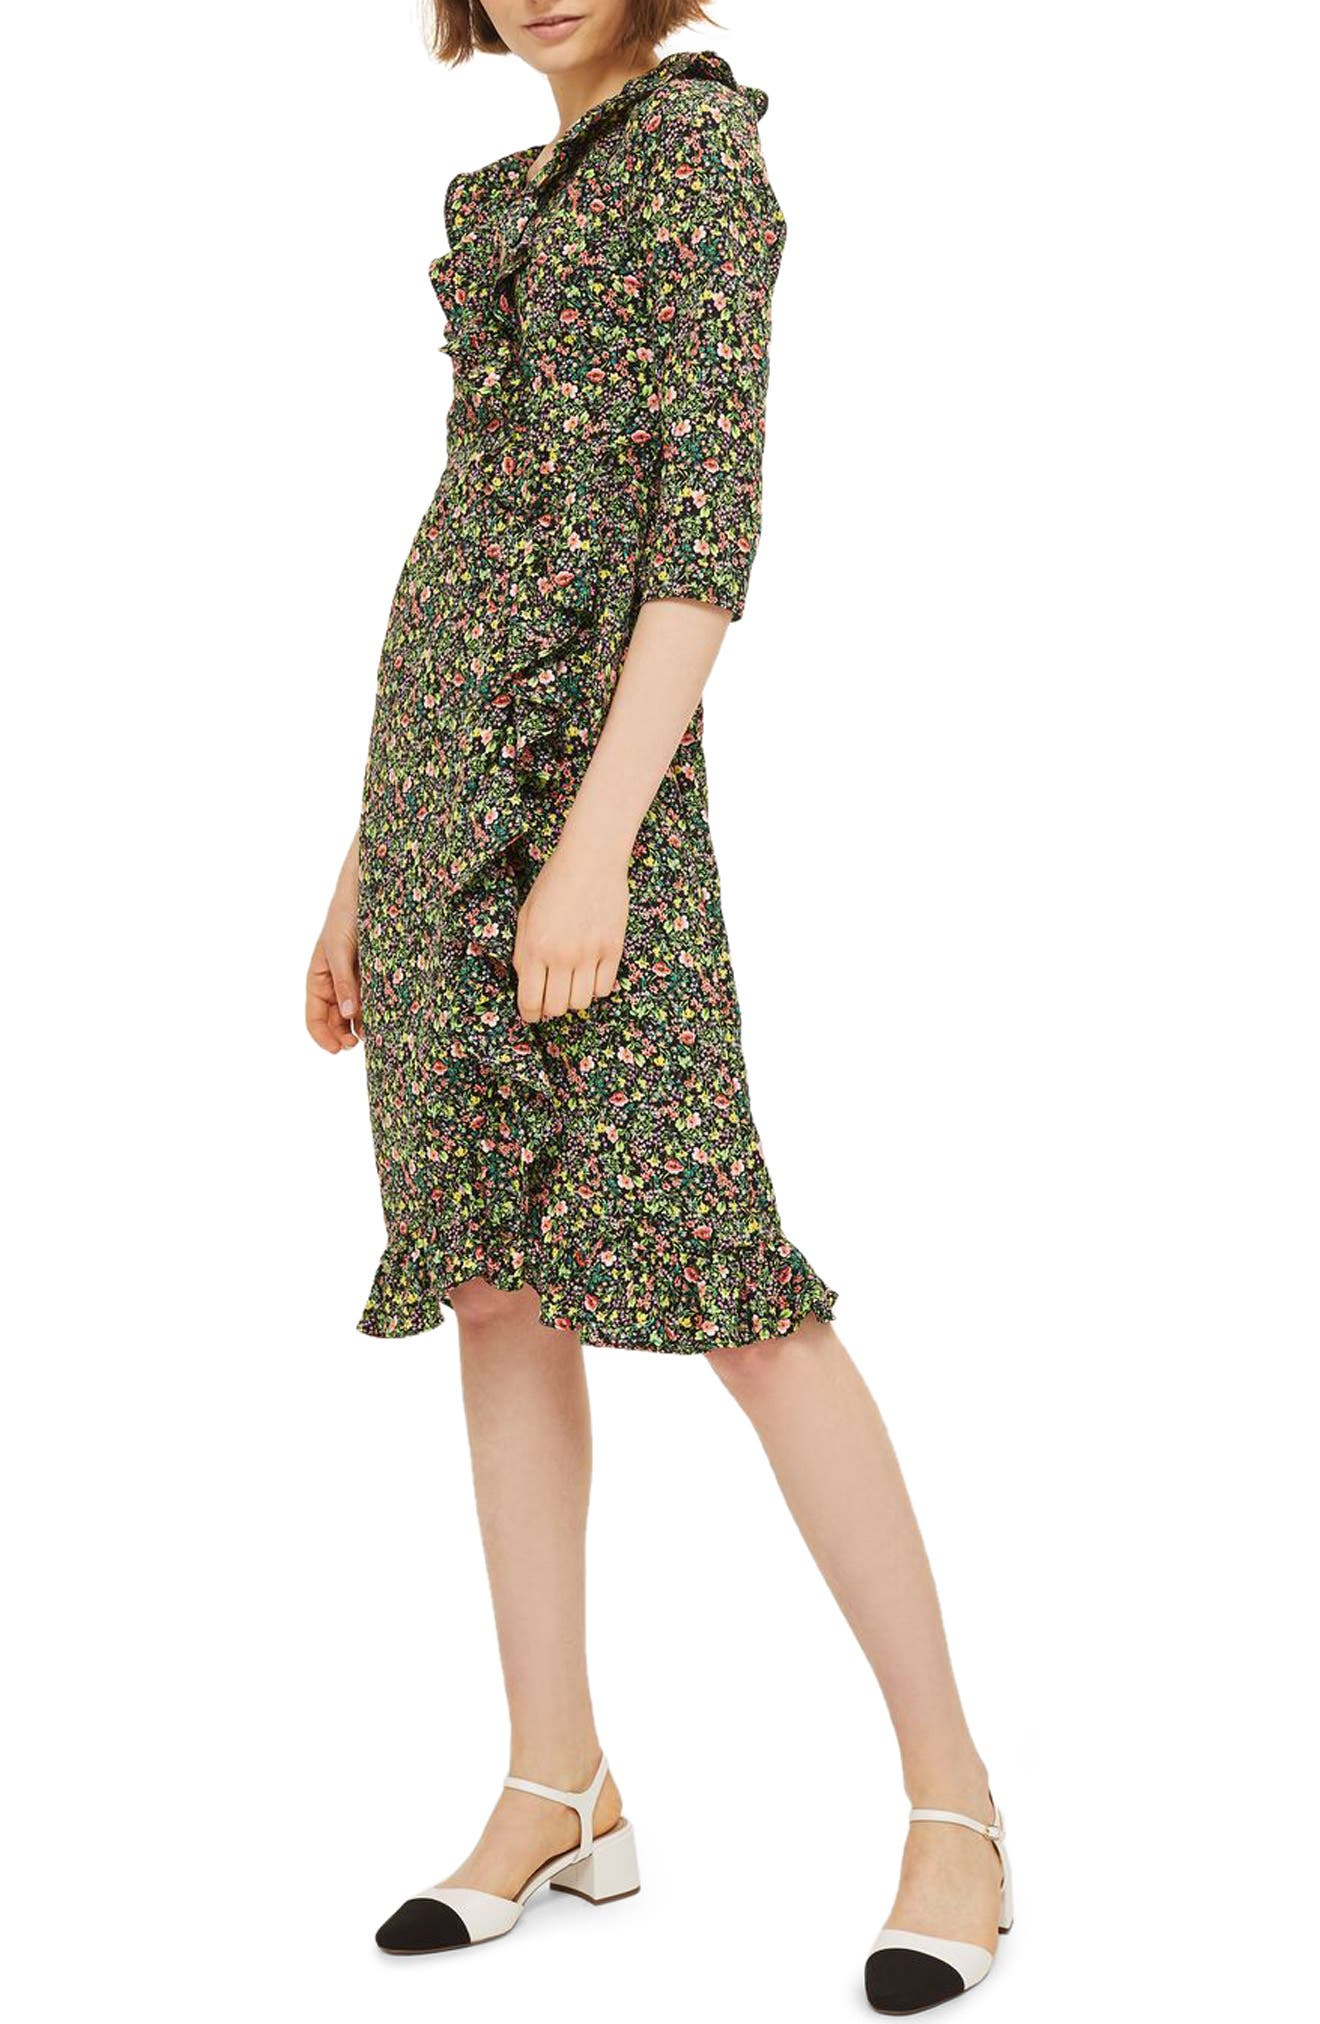 TOPSHOP, Flower Garden Ruffle Wrap Dress, Main thumbnail 1, color, 001